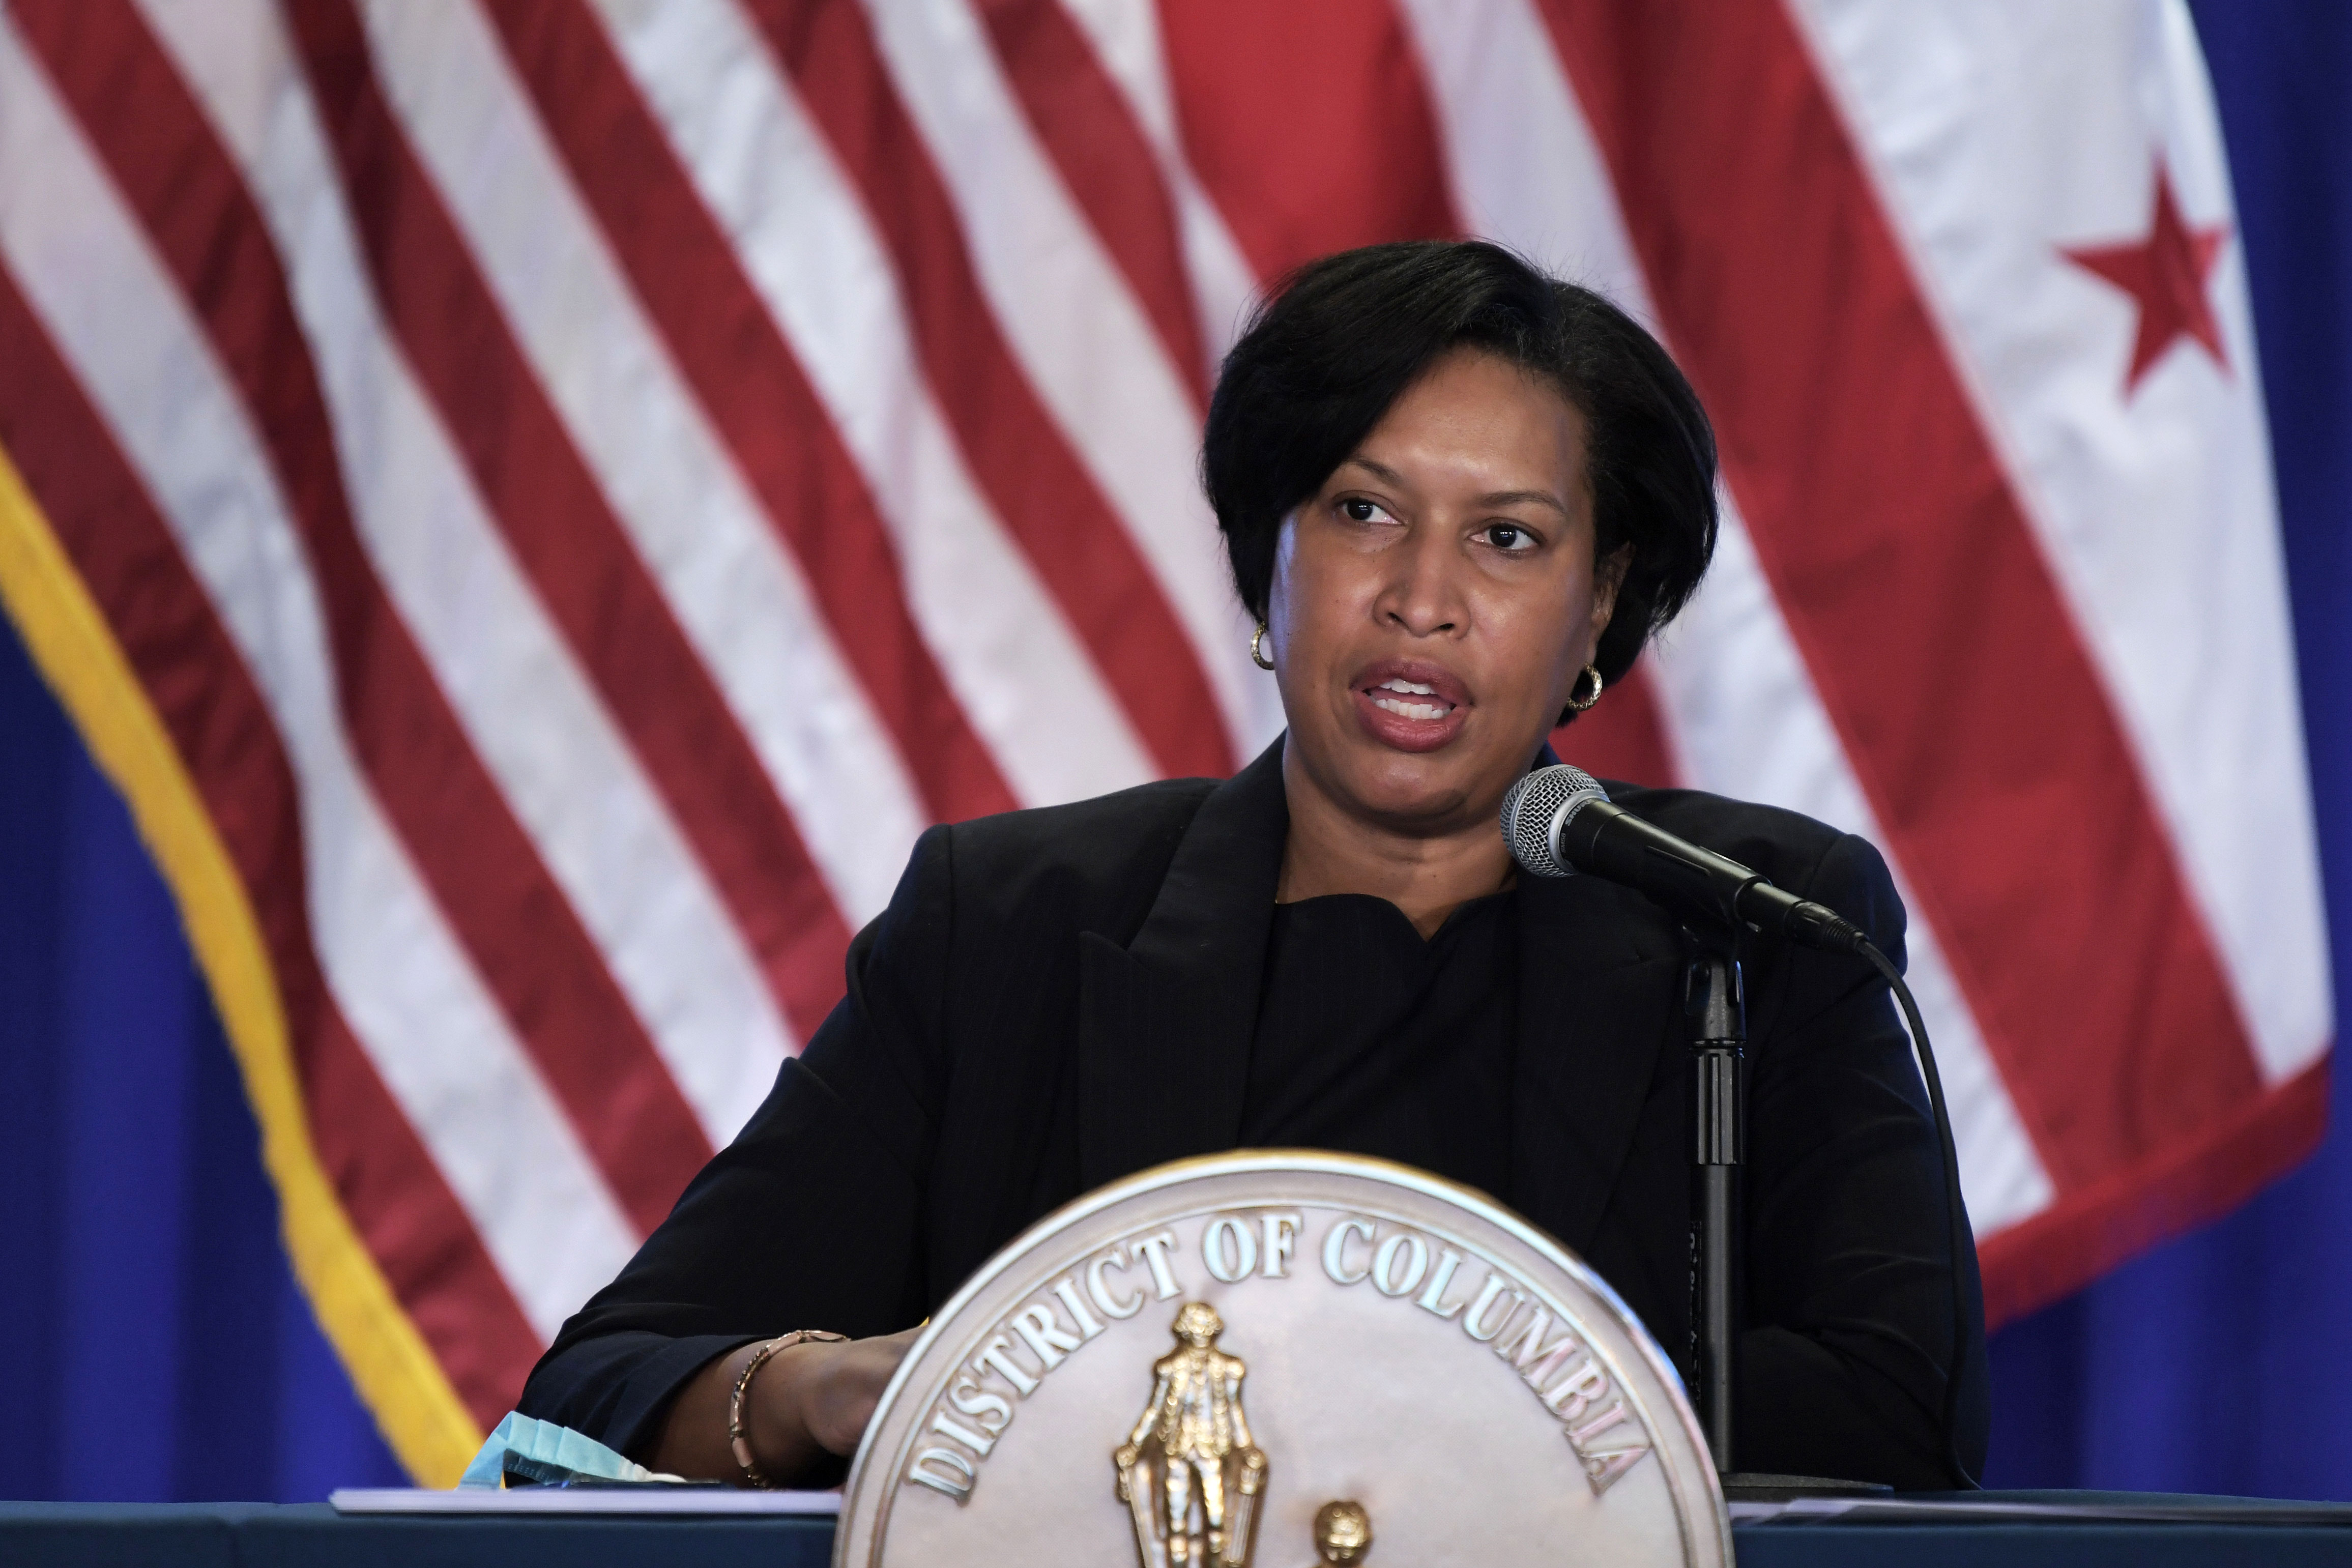 Muriel Bowser, mayor of Washington, DC, holds a press conference on January 11 in Washington, DC.